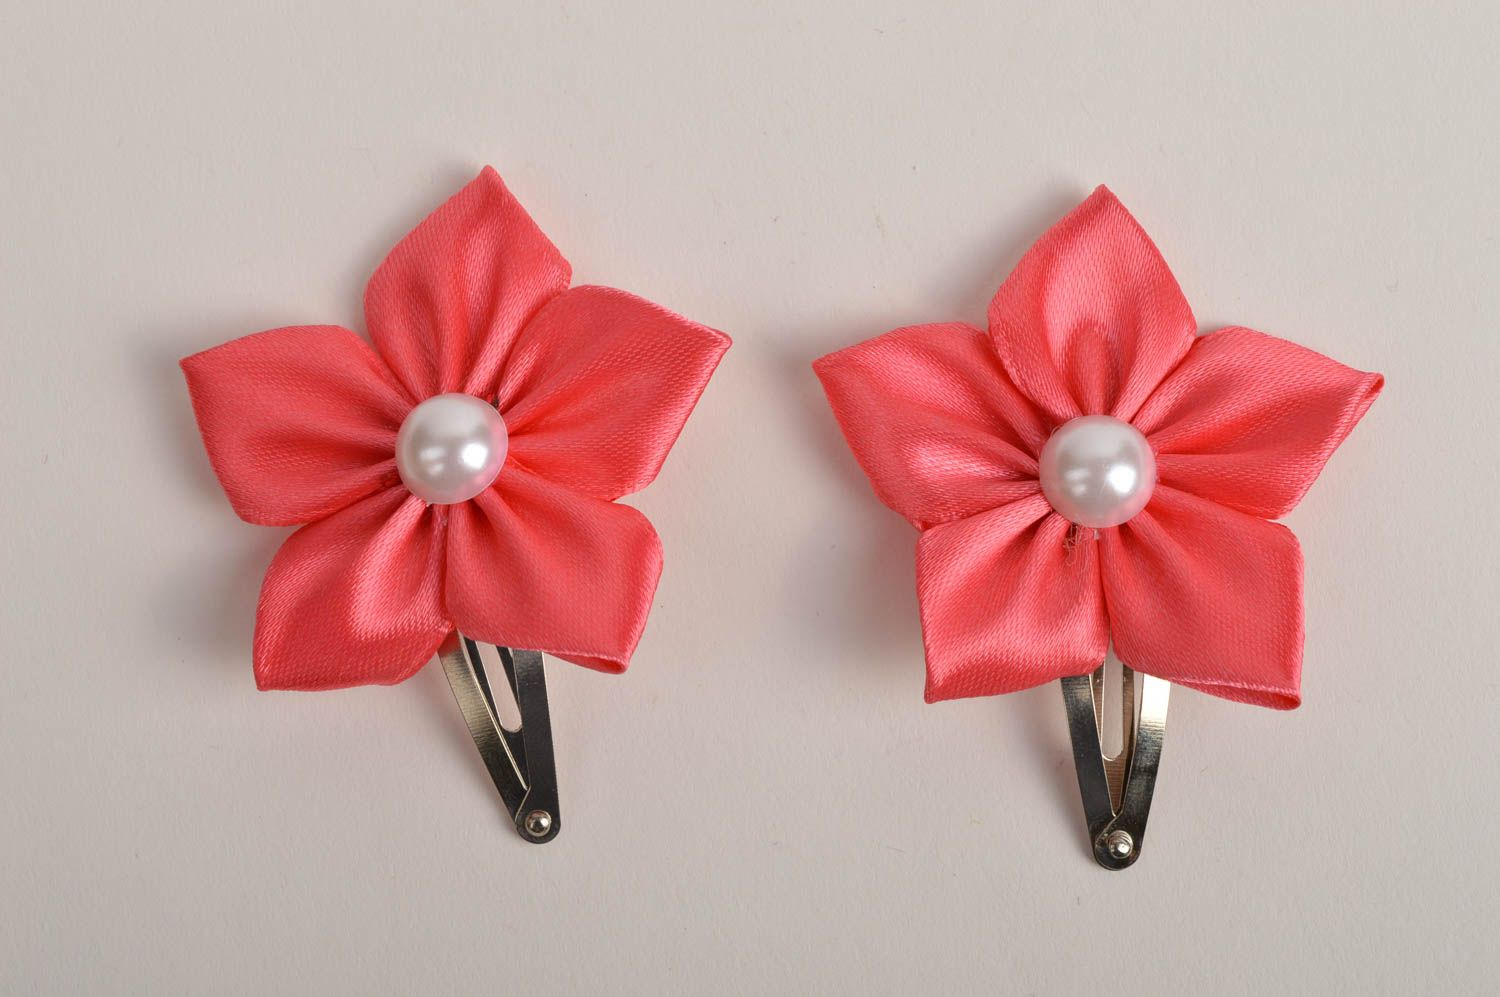 Beautiful handmade hair clip 2 pieces flowers in hair designer hair accessories photo 3